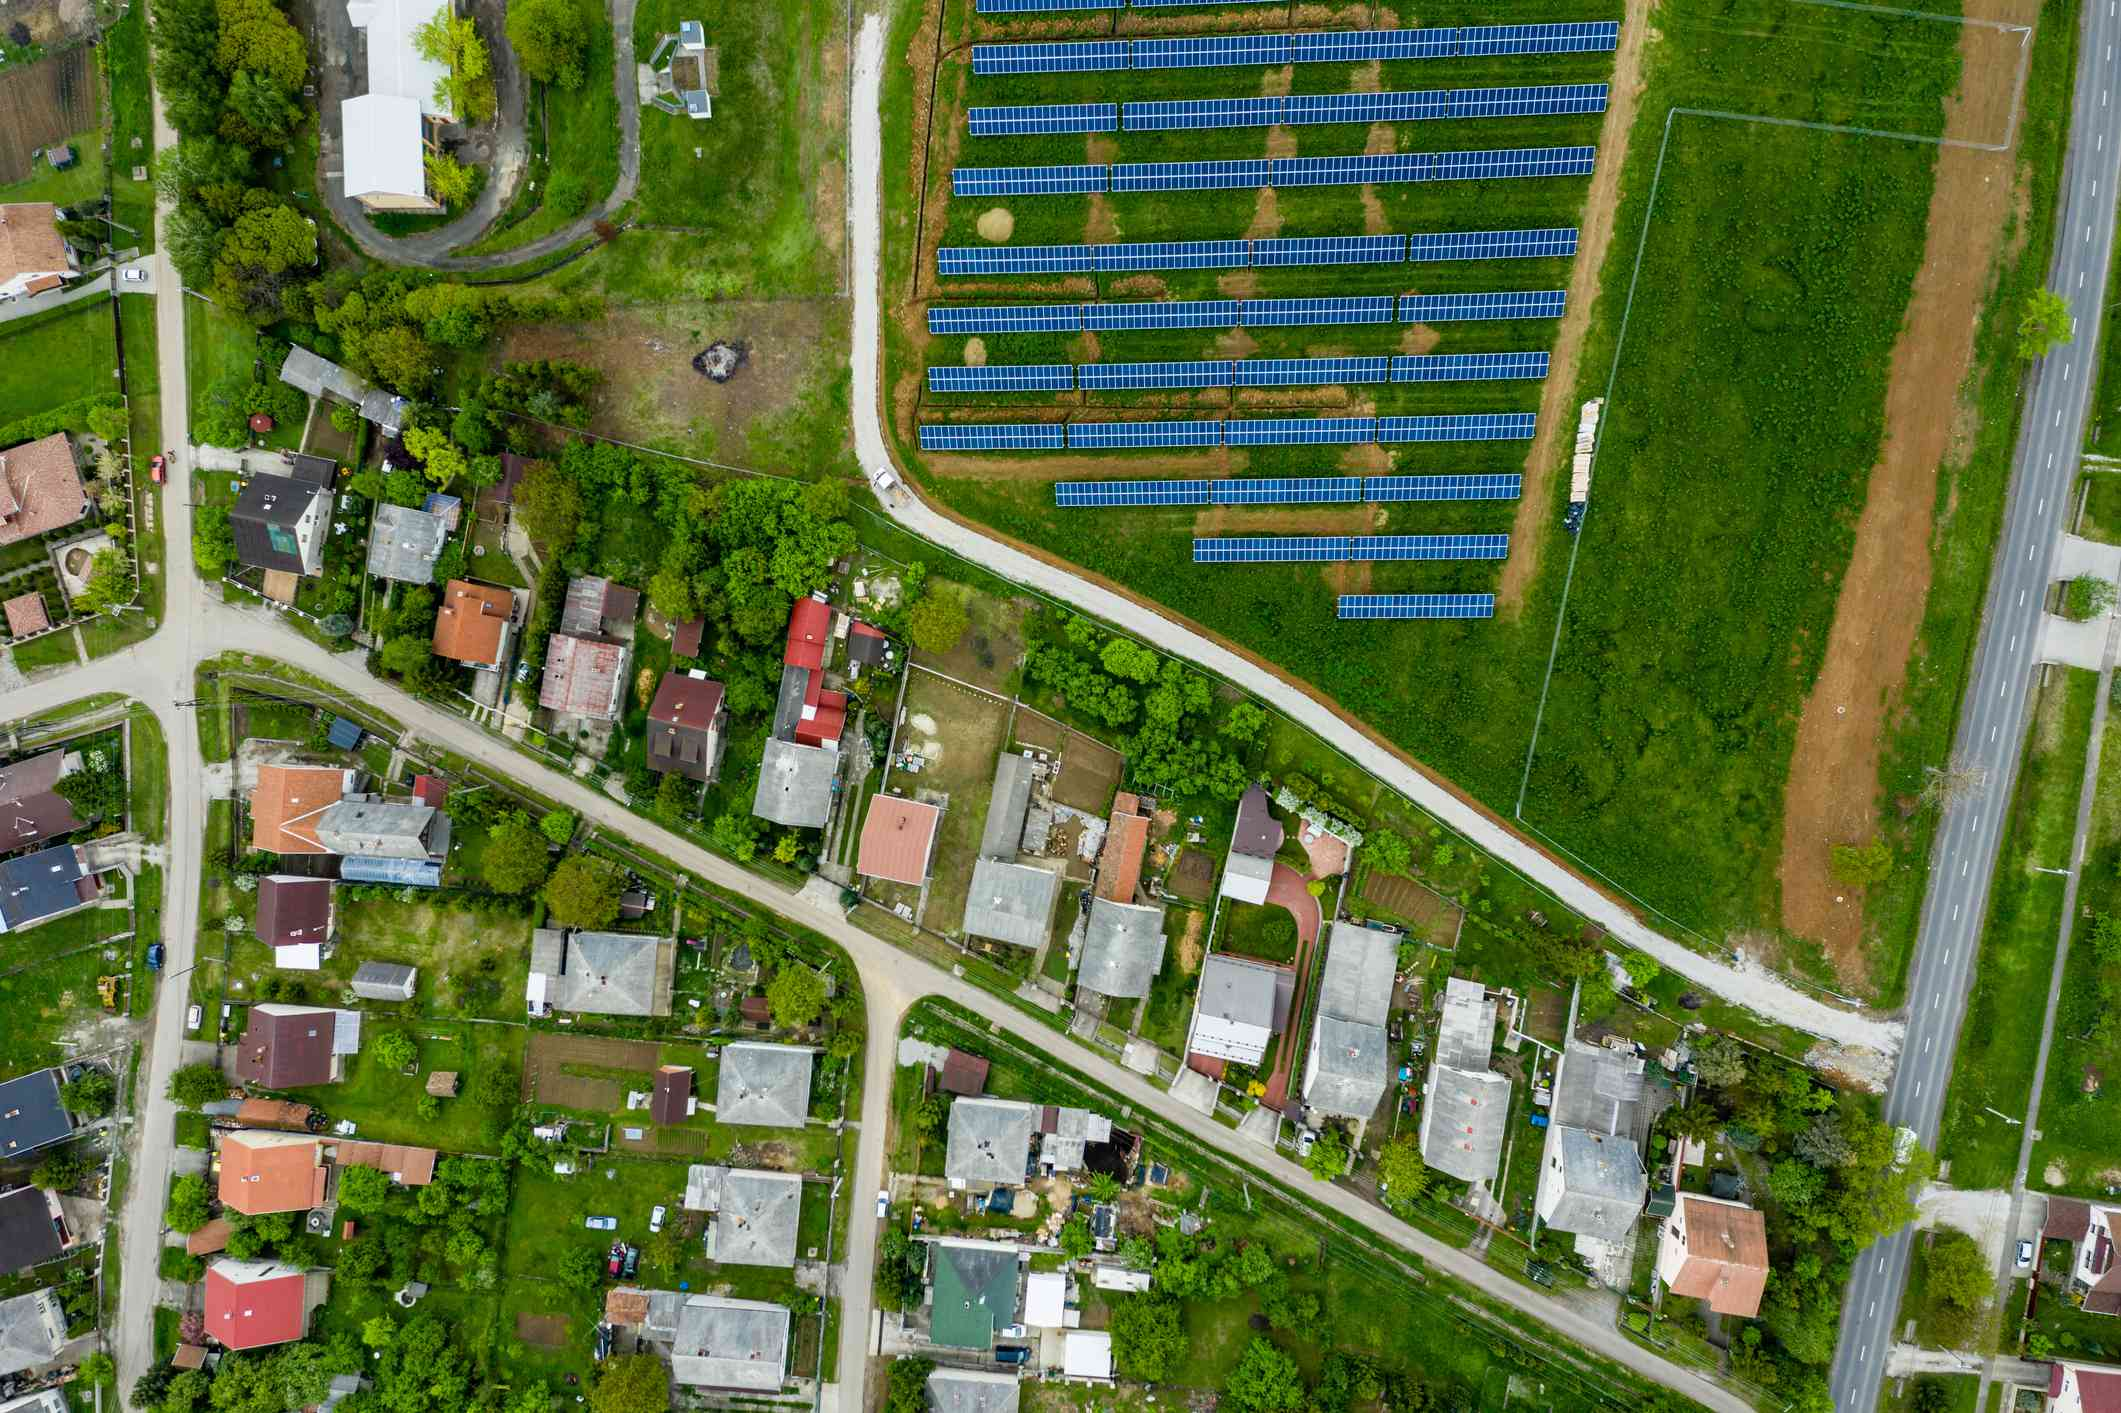 An aerial view shows a solar array in a field next to a residential neighborhood.